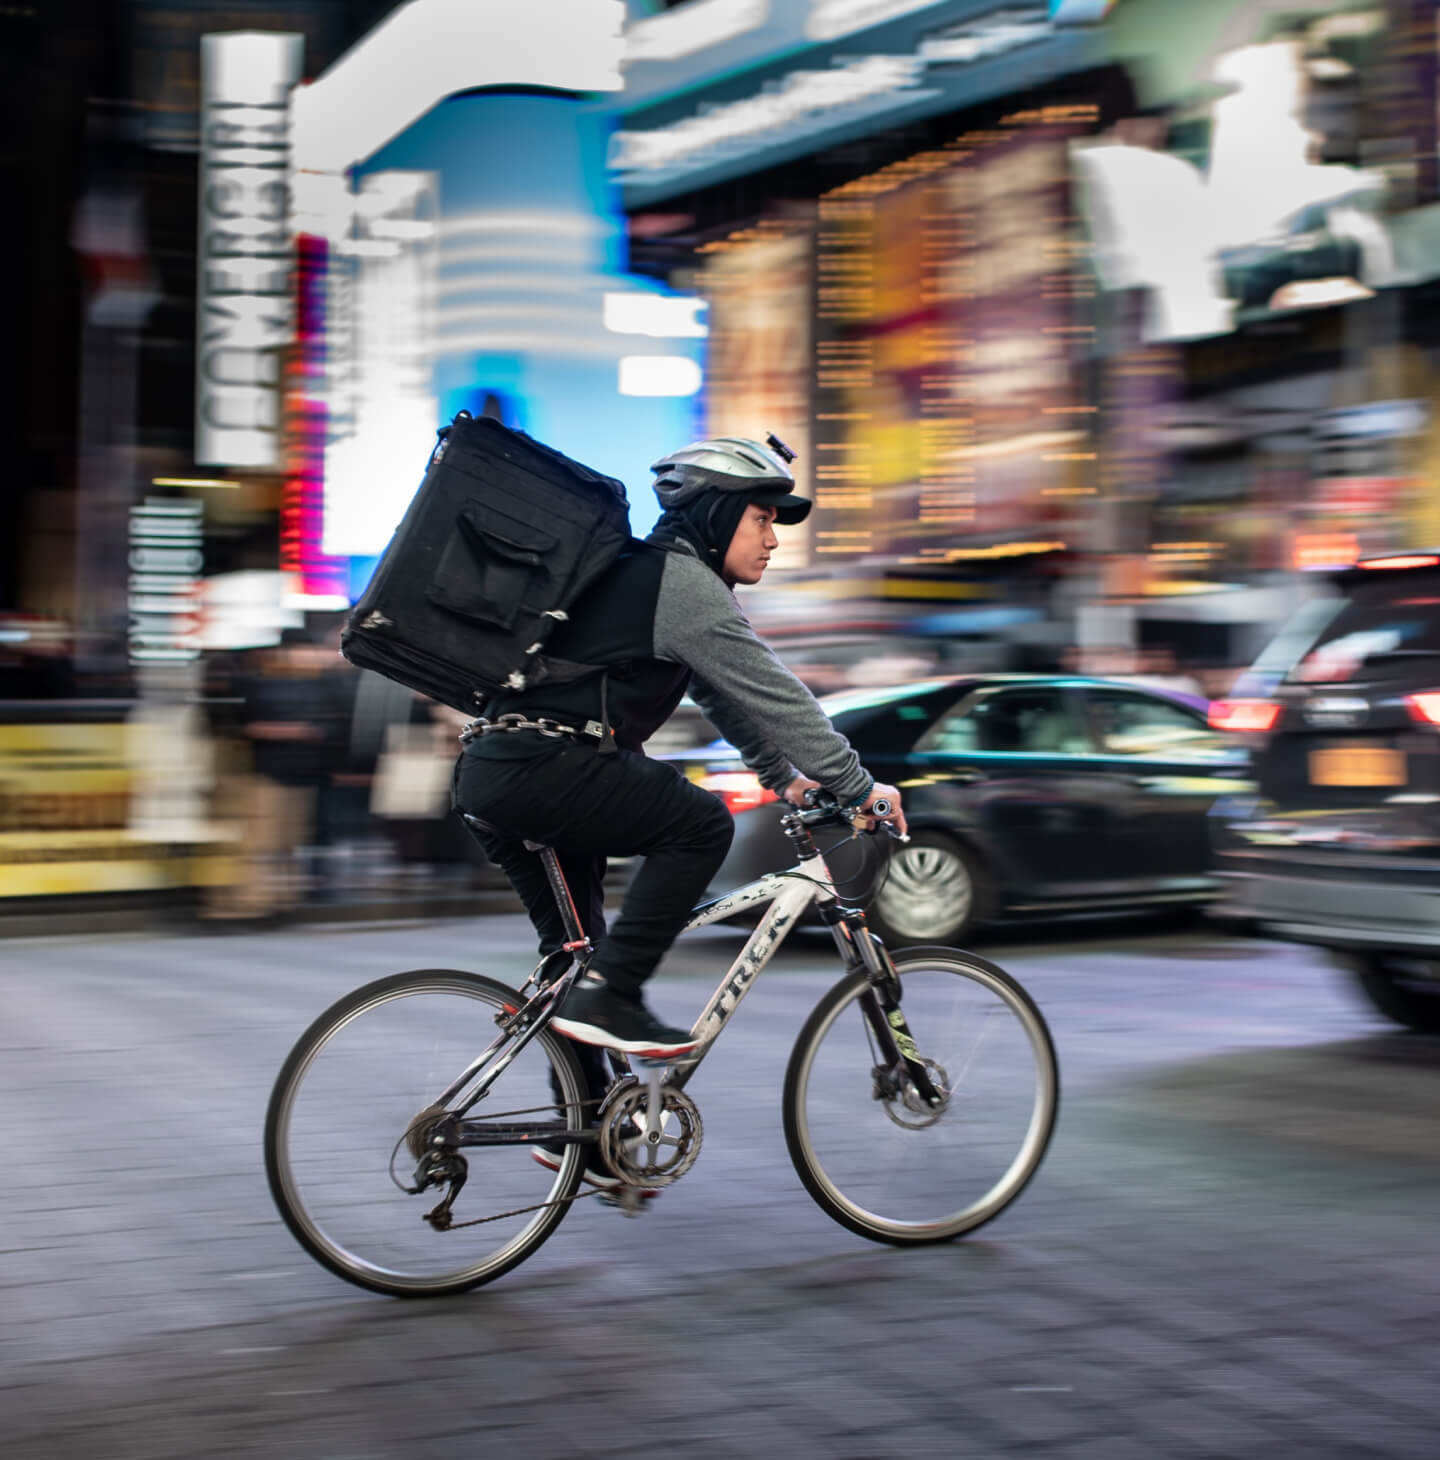 Gig economy worker on a bicycle